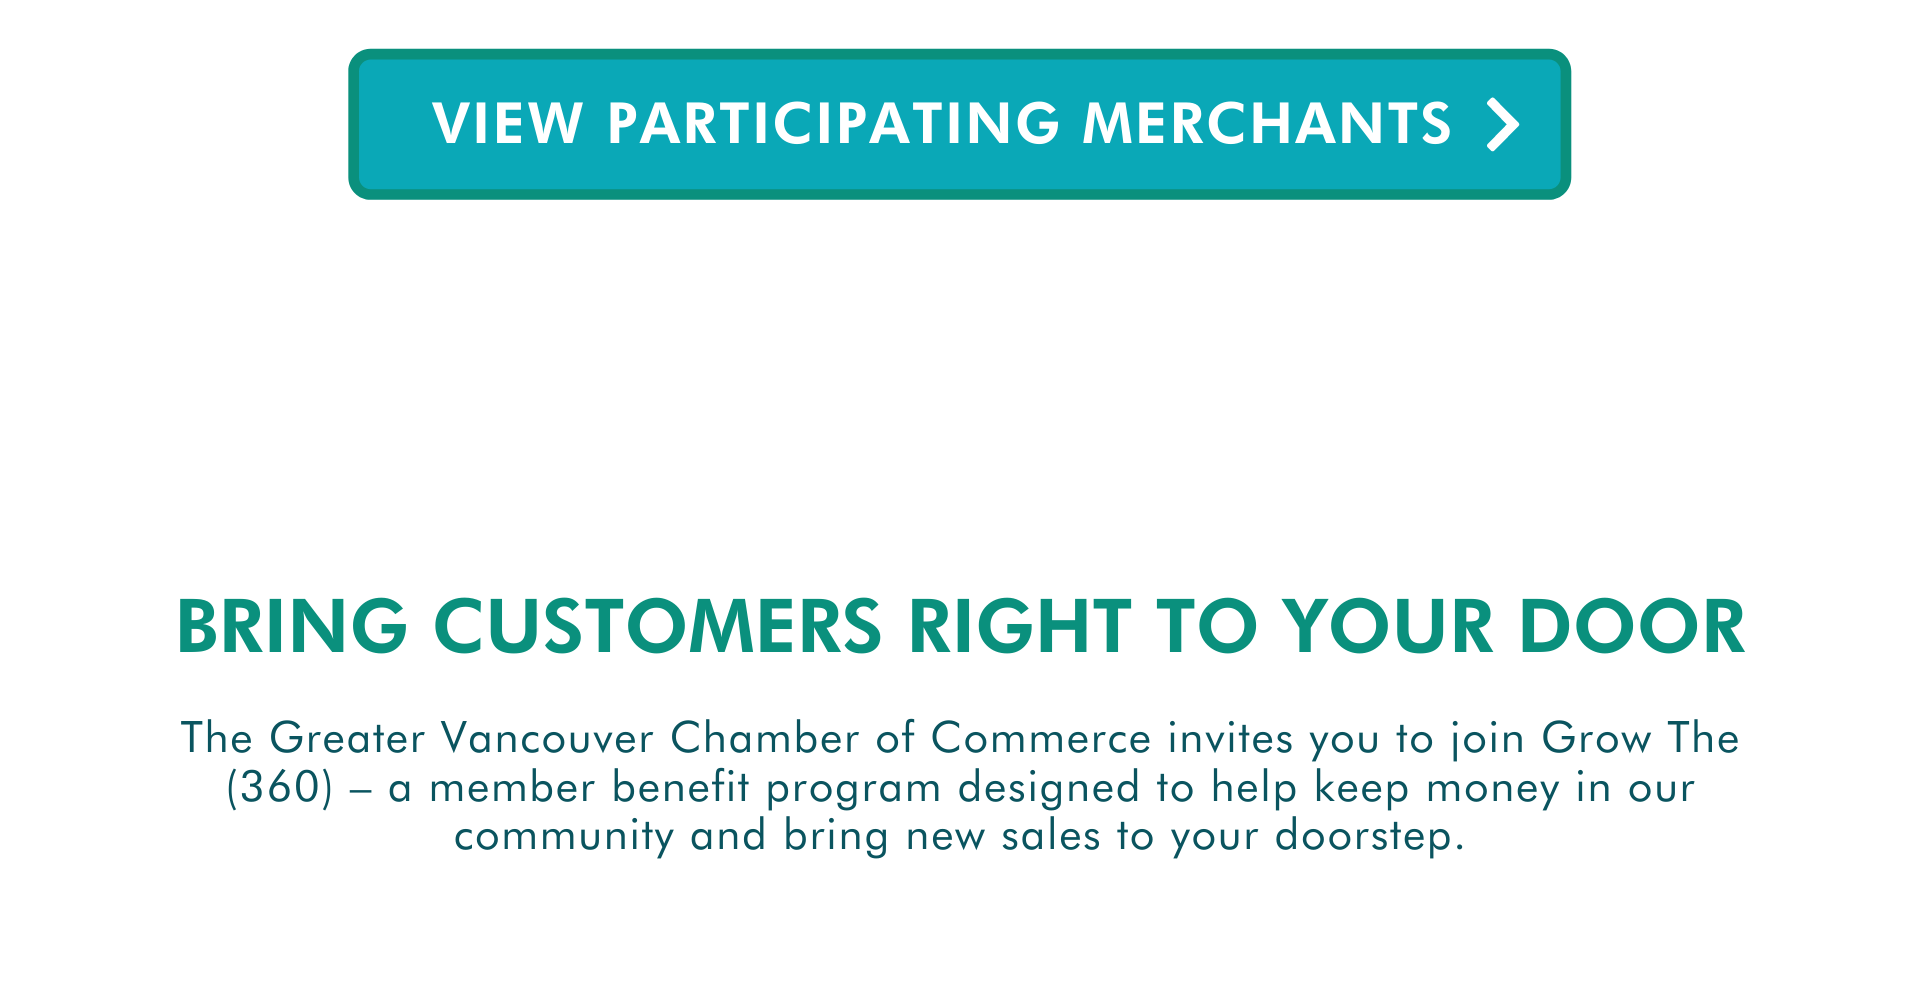 The Greater Vancouver Chamber of Commerce invites you to join Grow The (360) – a member benefit program designed to help keep money in our community and bring new sales to your doorstep. Bring customers right to your door View participating merchants